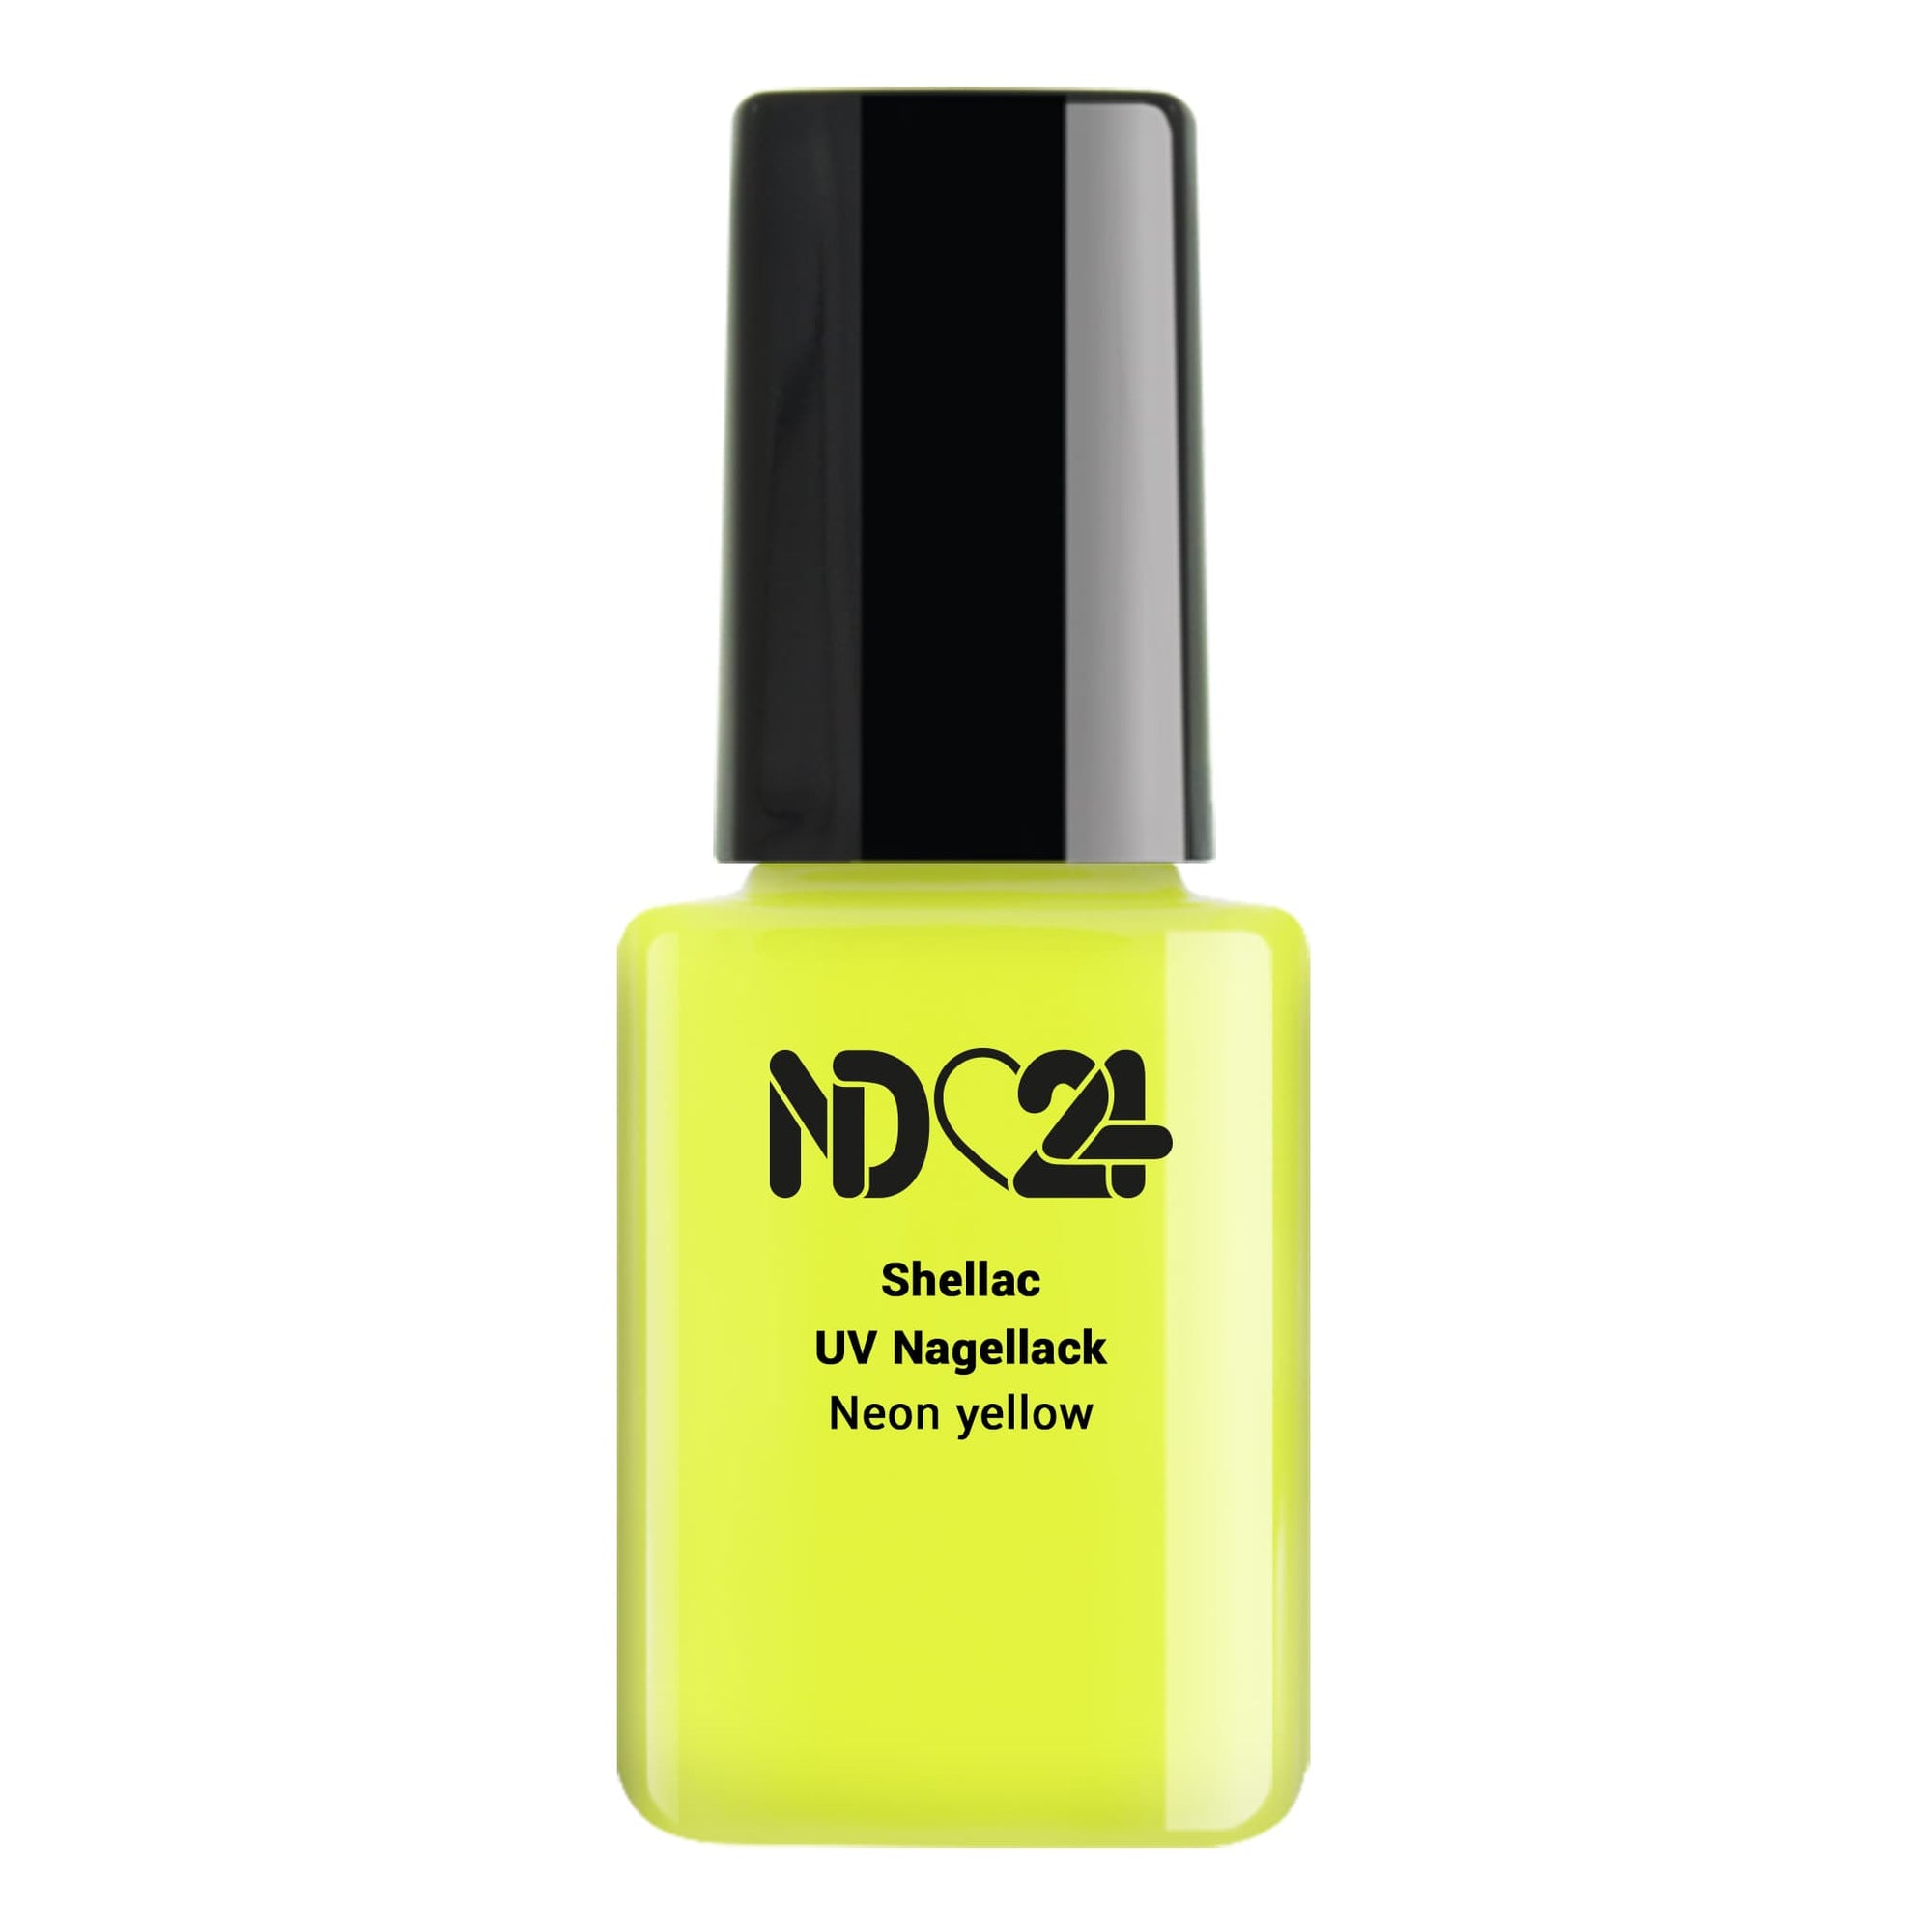 Shellac Neon yellow